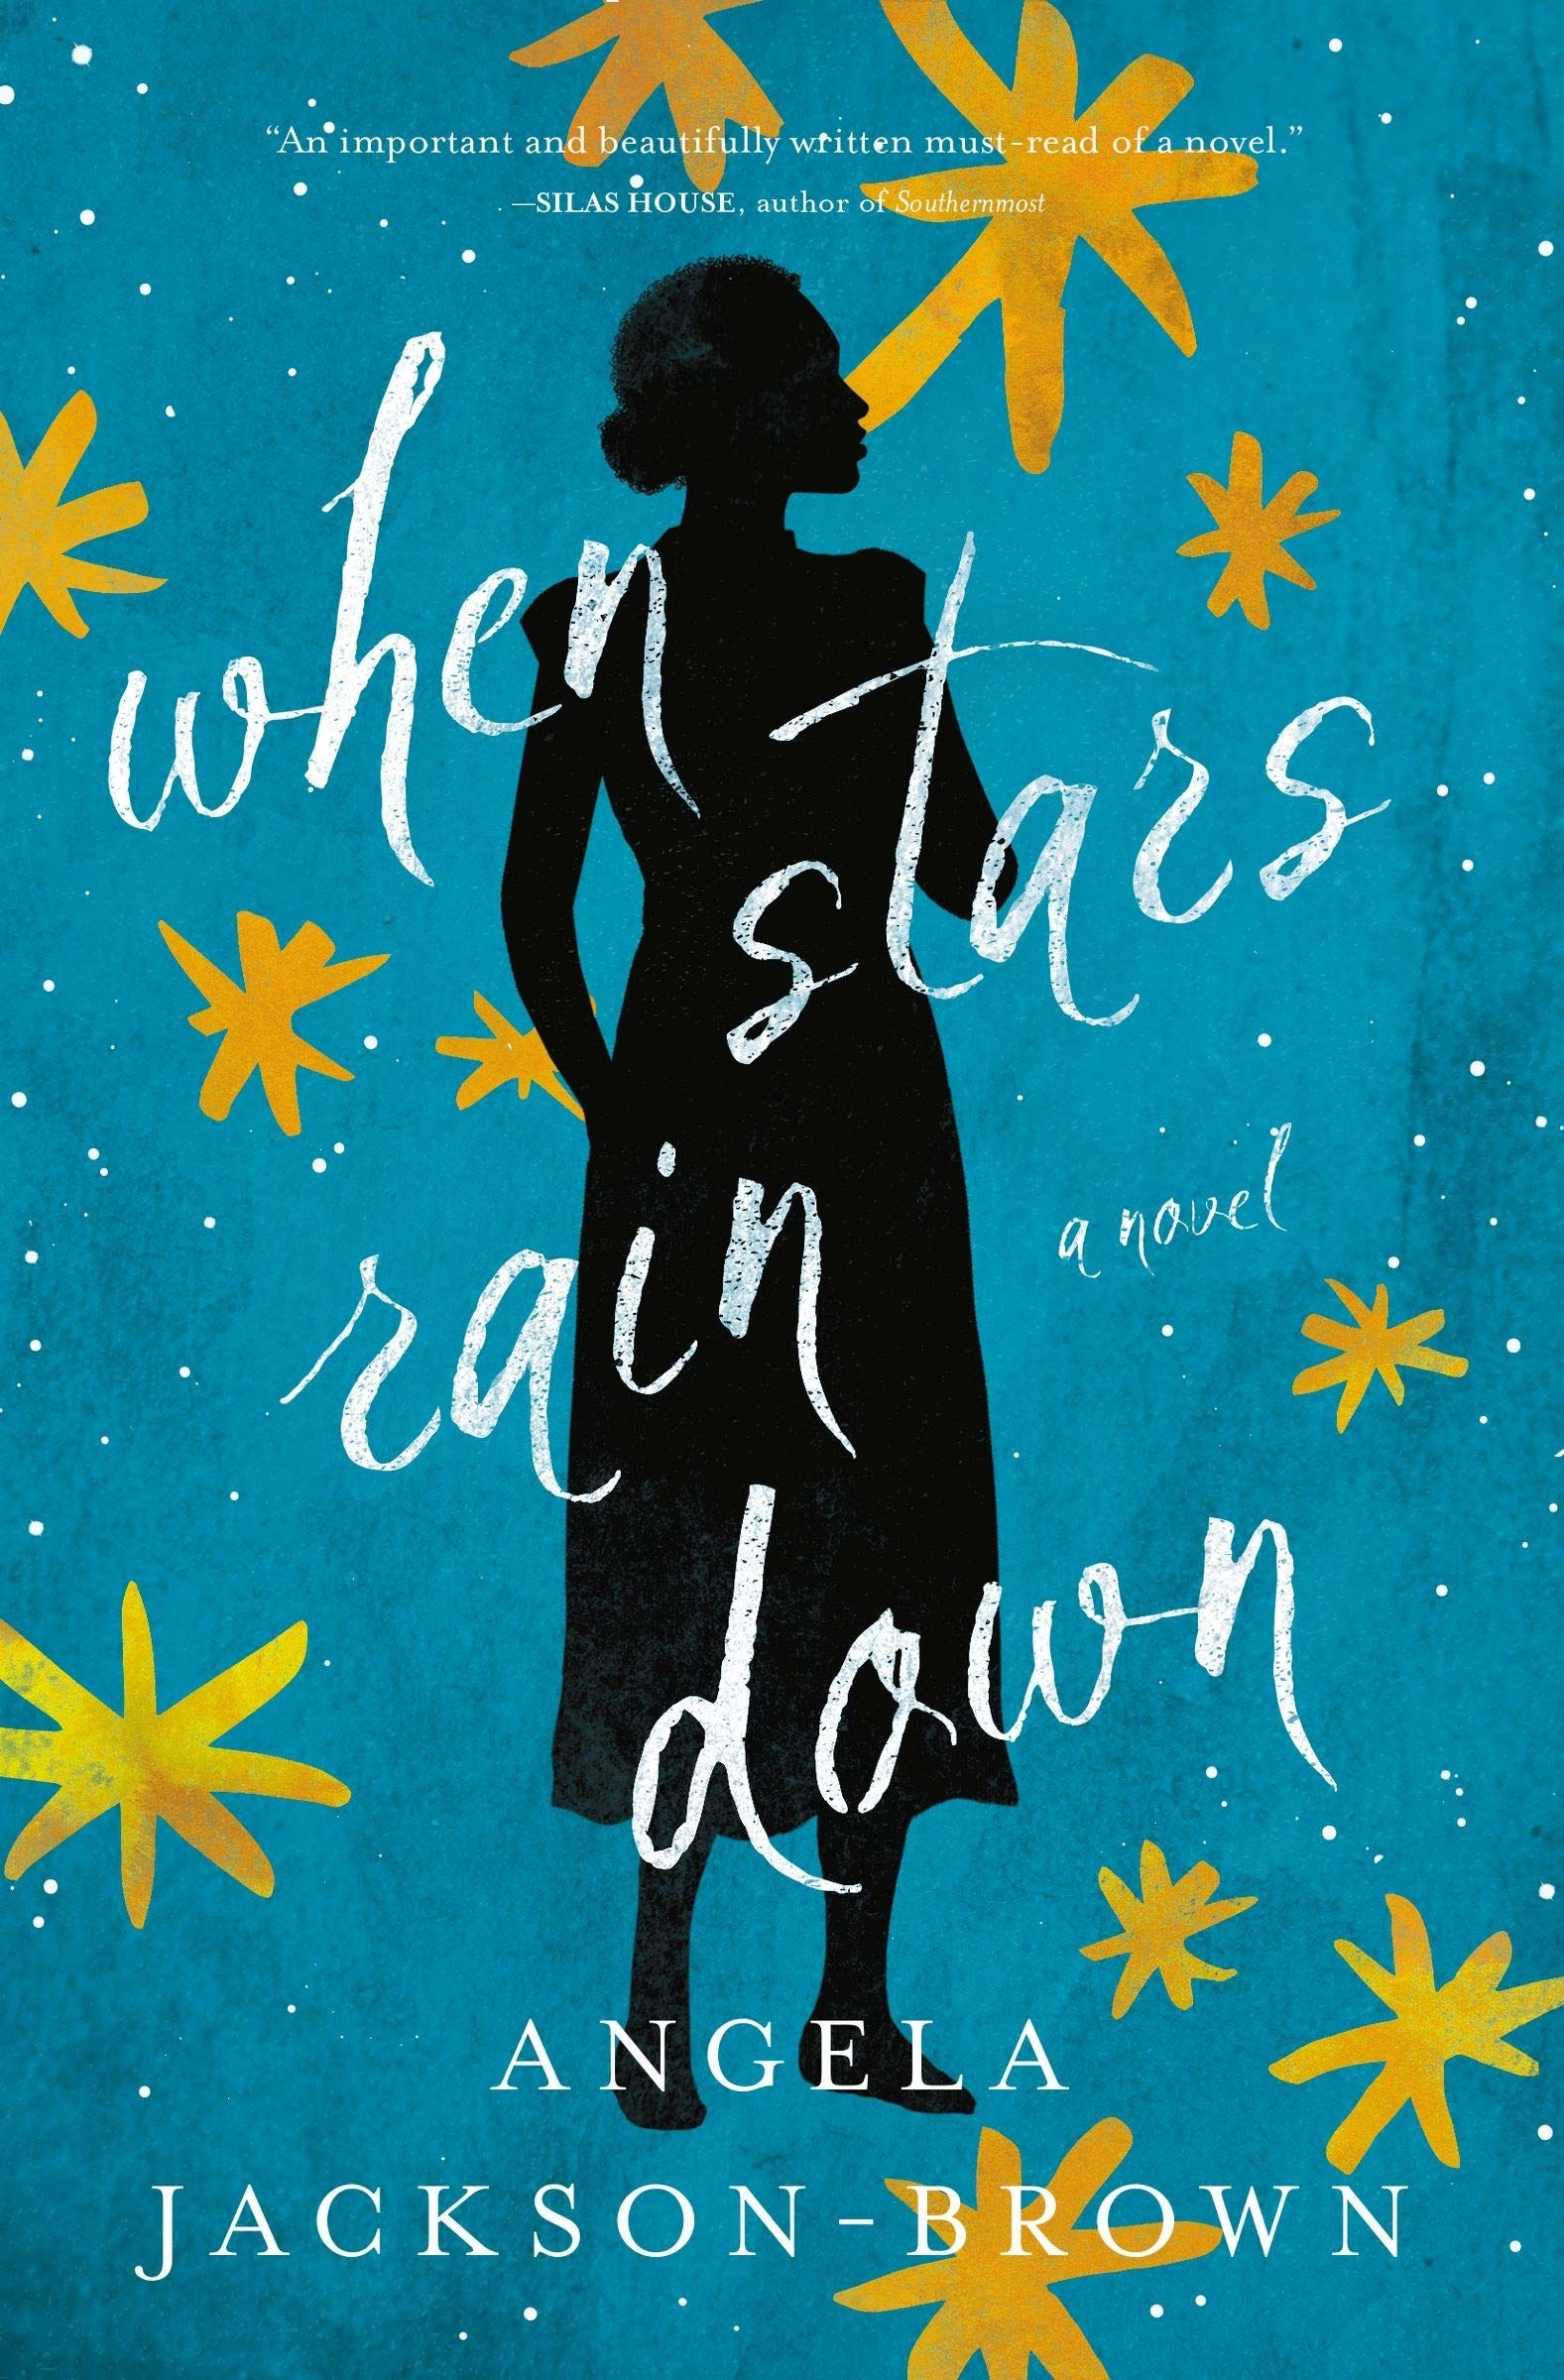 the book's cover with stars and a standing woman